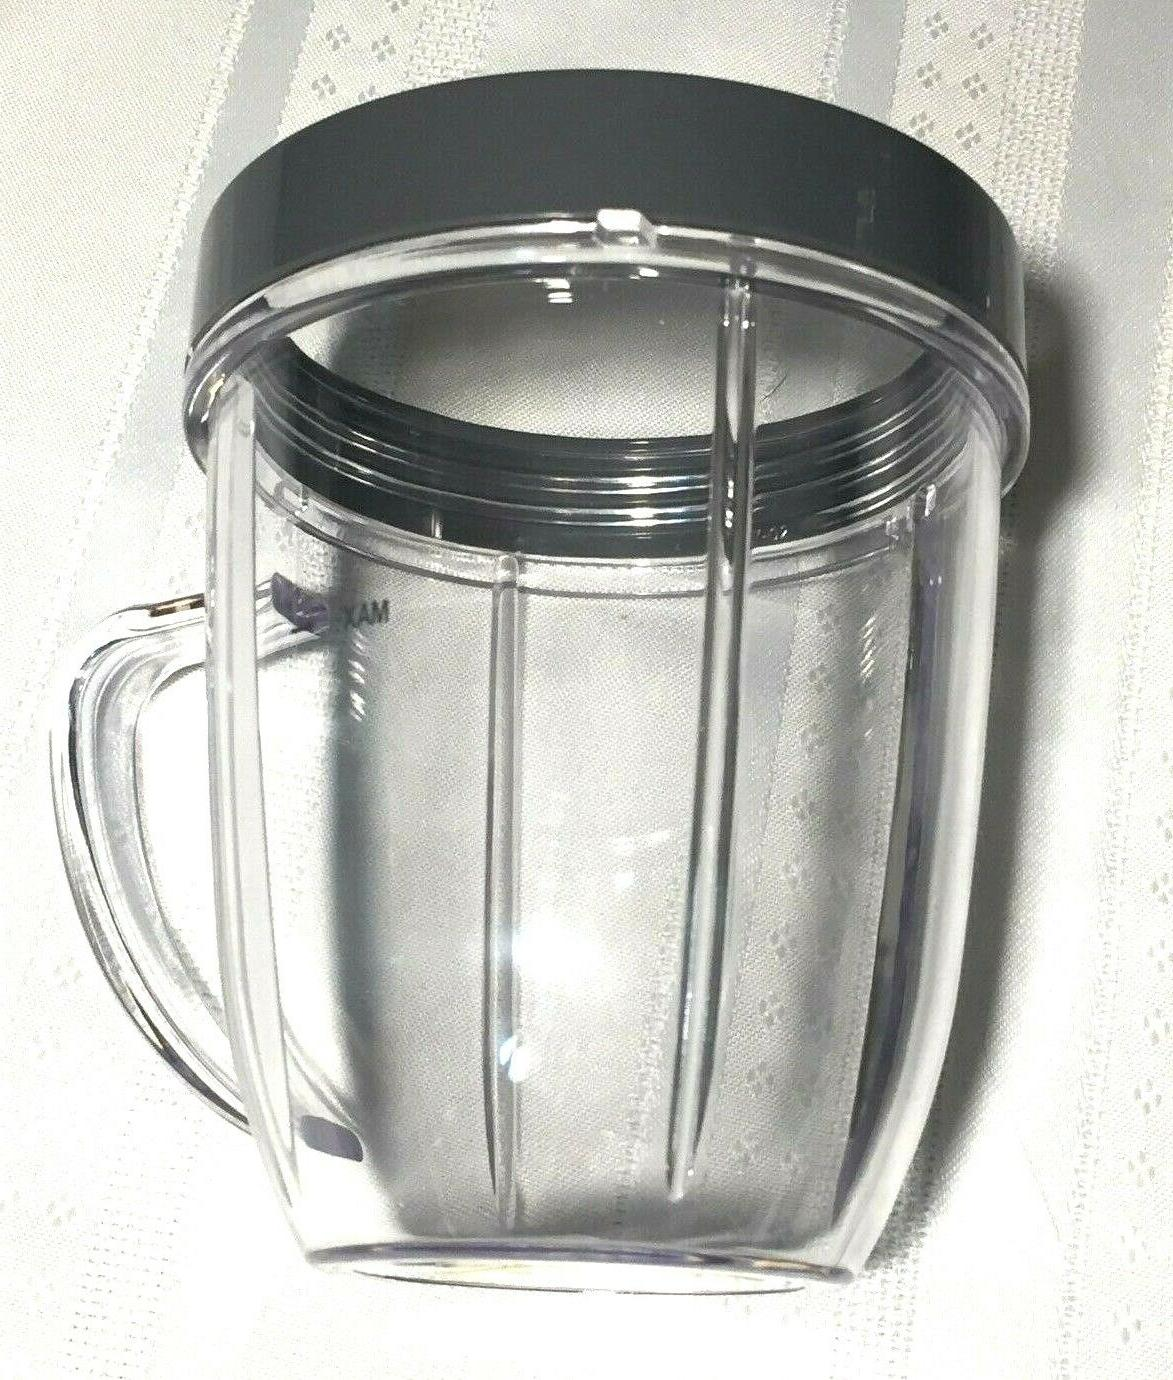 Cup and Blade Pc Set for NutriBullet Replacement High Mixer Pro!